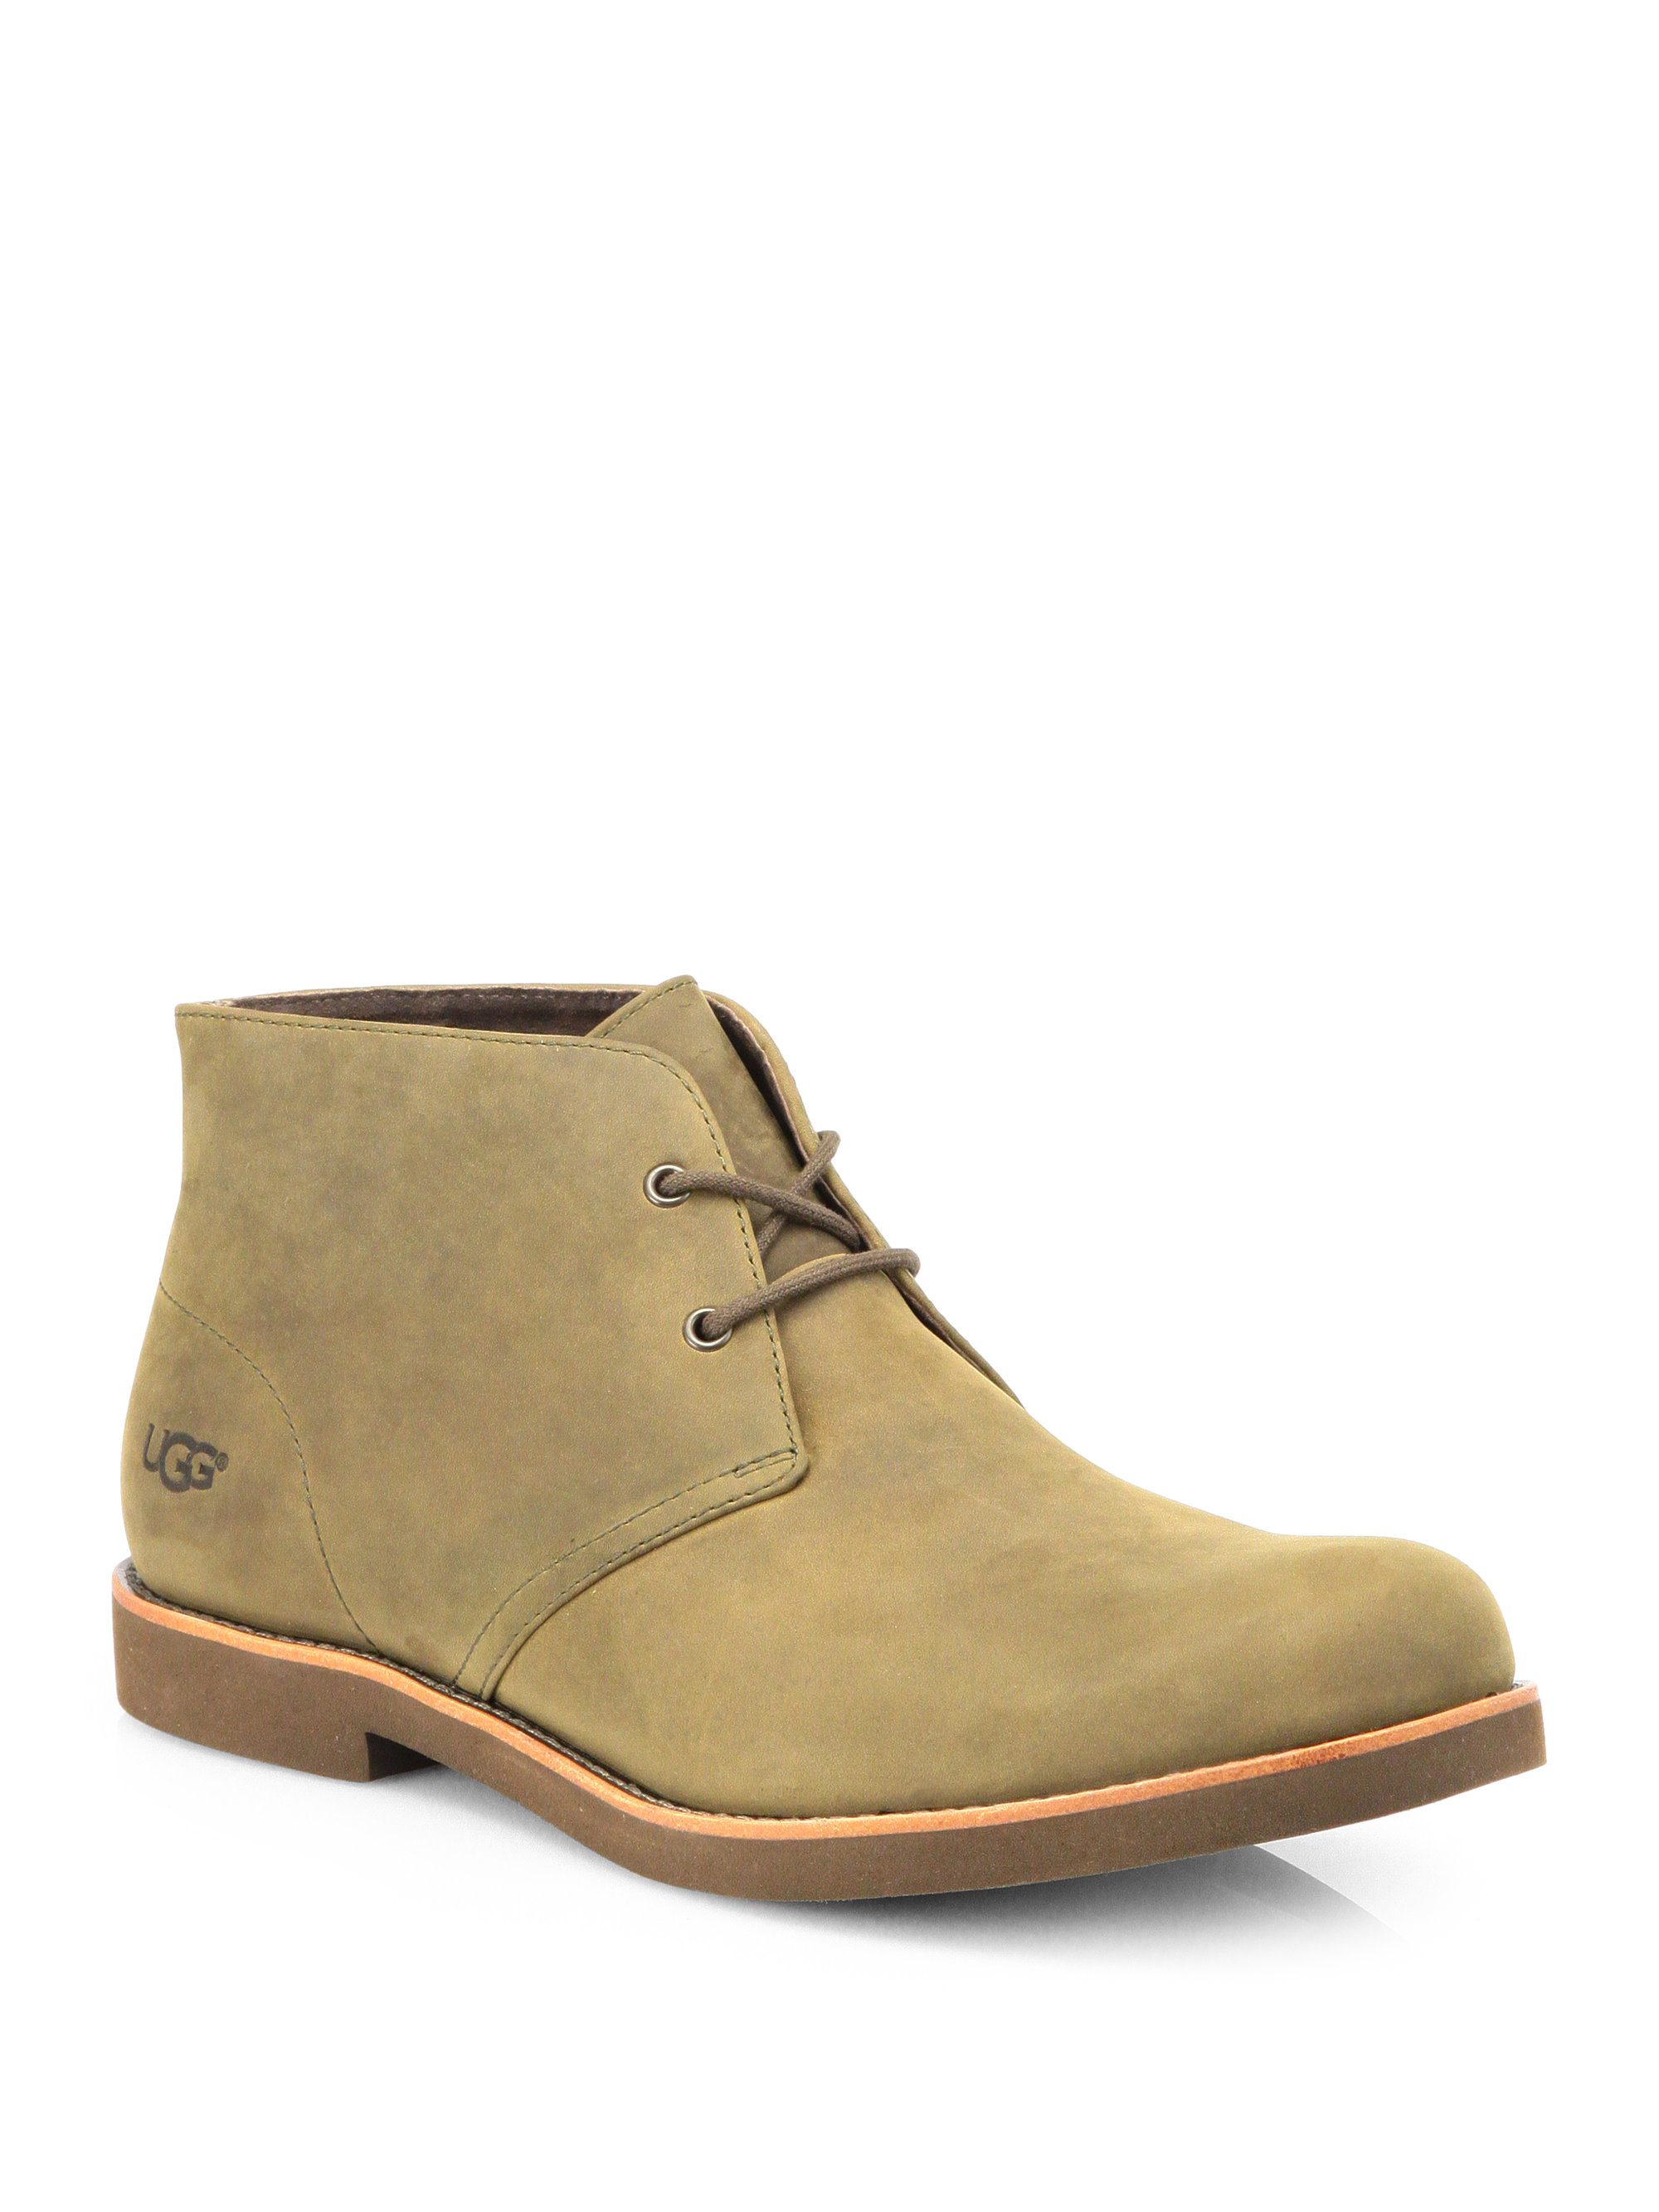 ugg westly nubuck leather chukka boots in beige for lyst